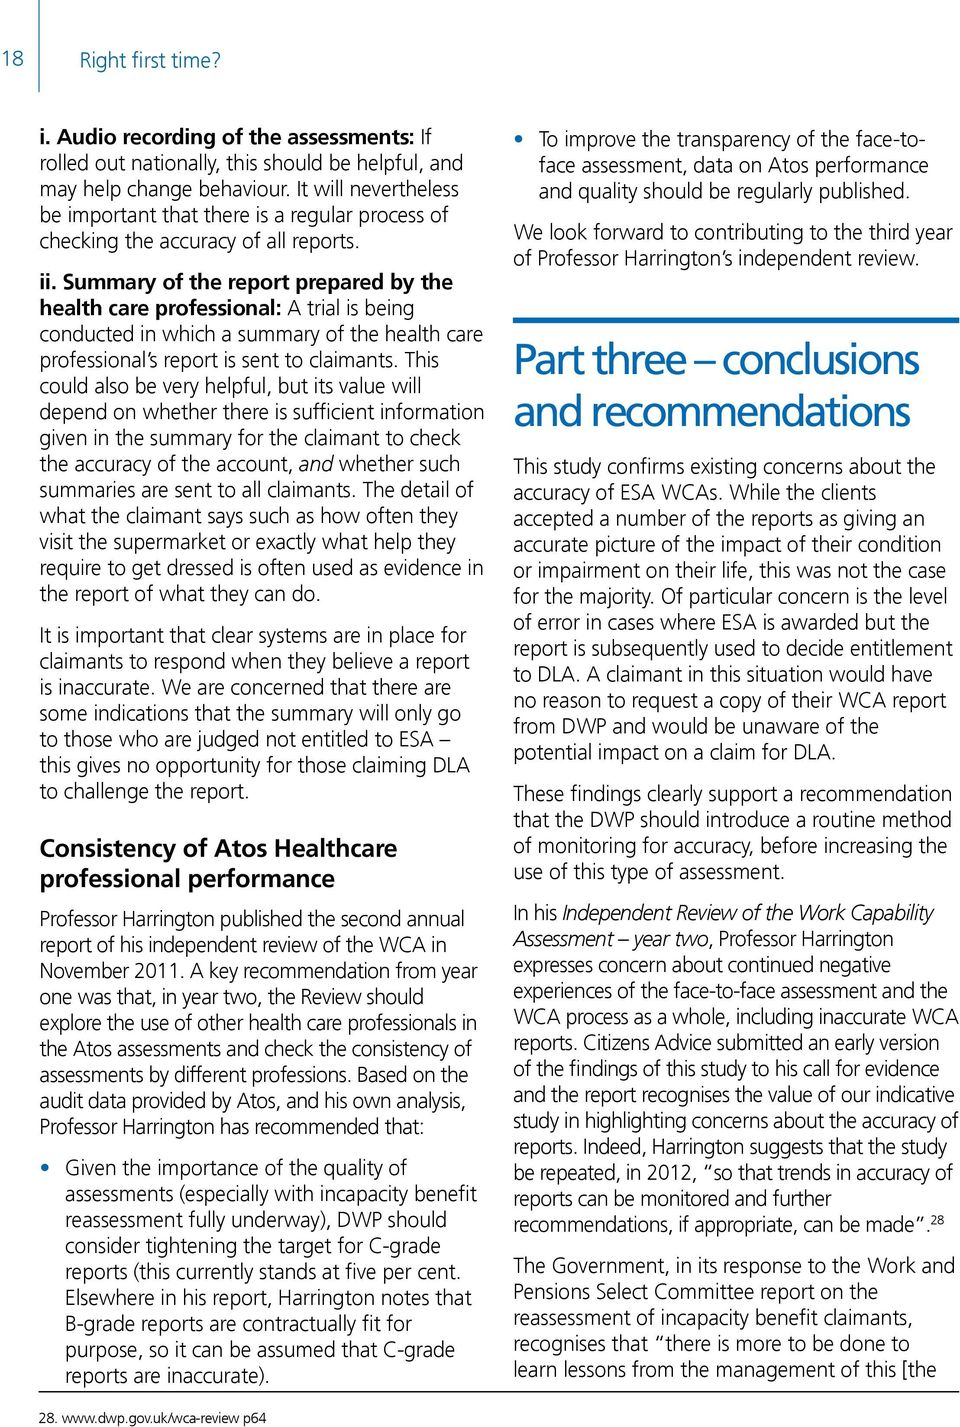 Summary of the report prepared by the health care professional: A trial is being conducted in which a summary of the health care professional s report is sent to claimants.